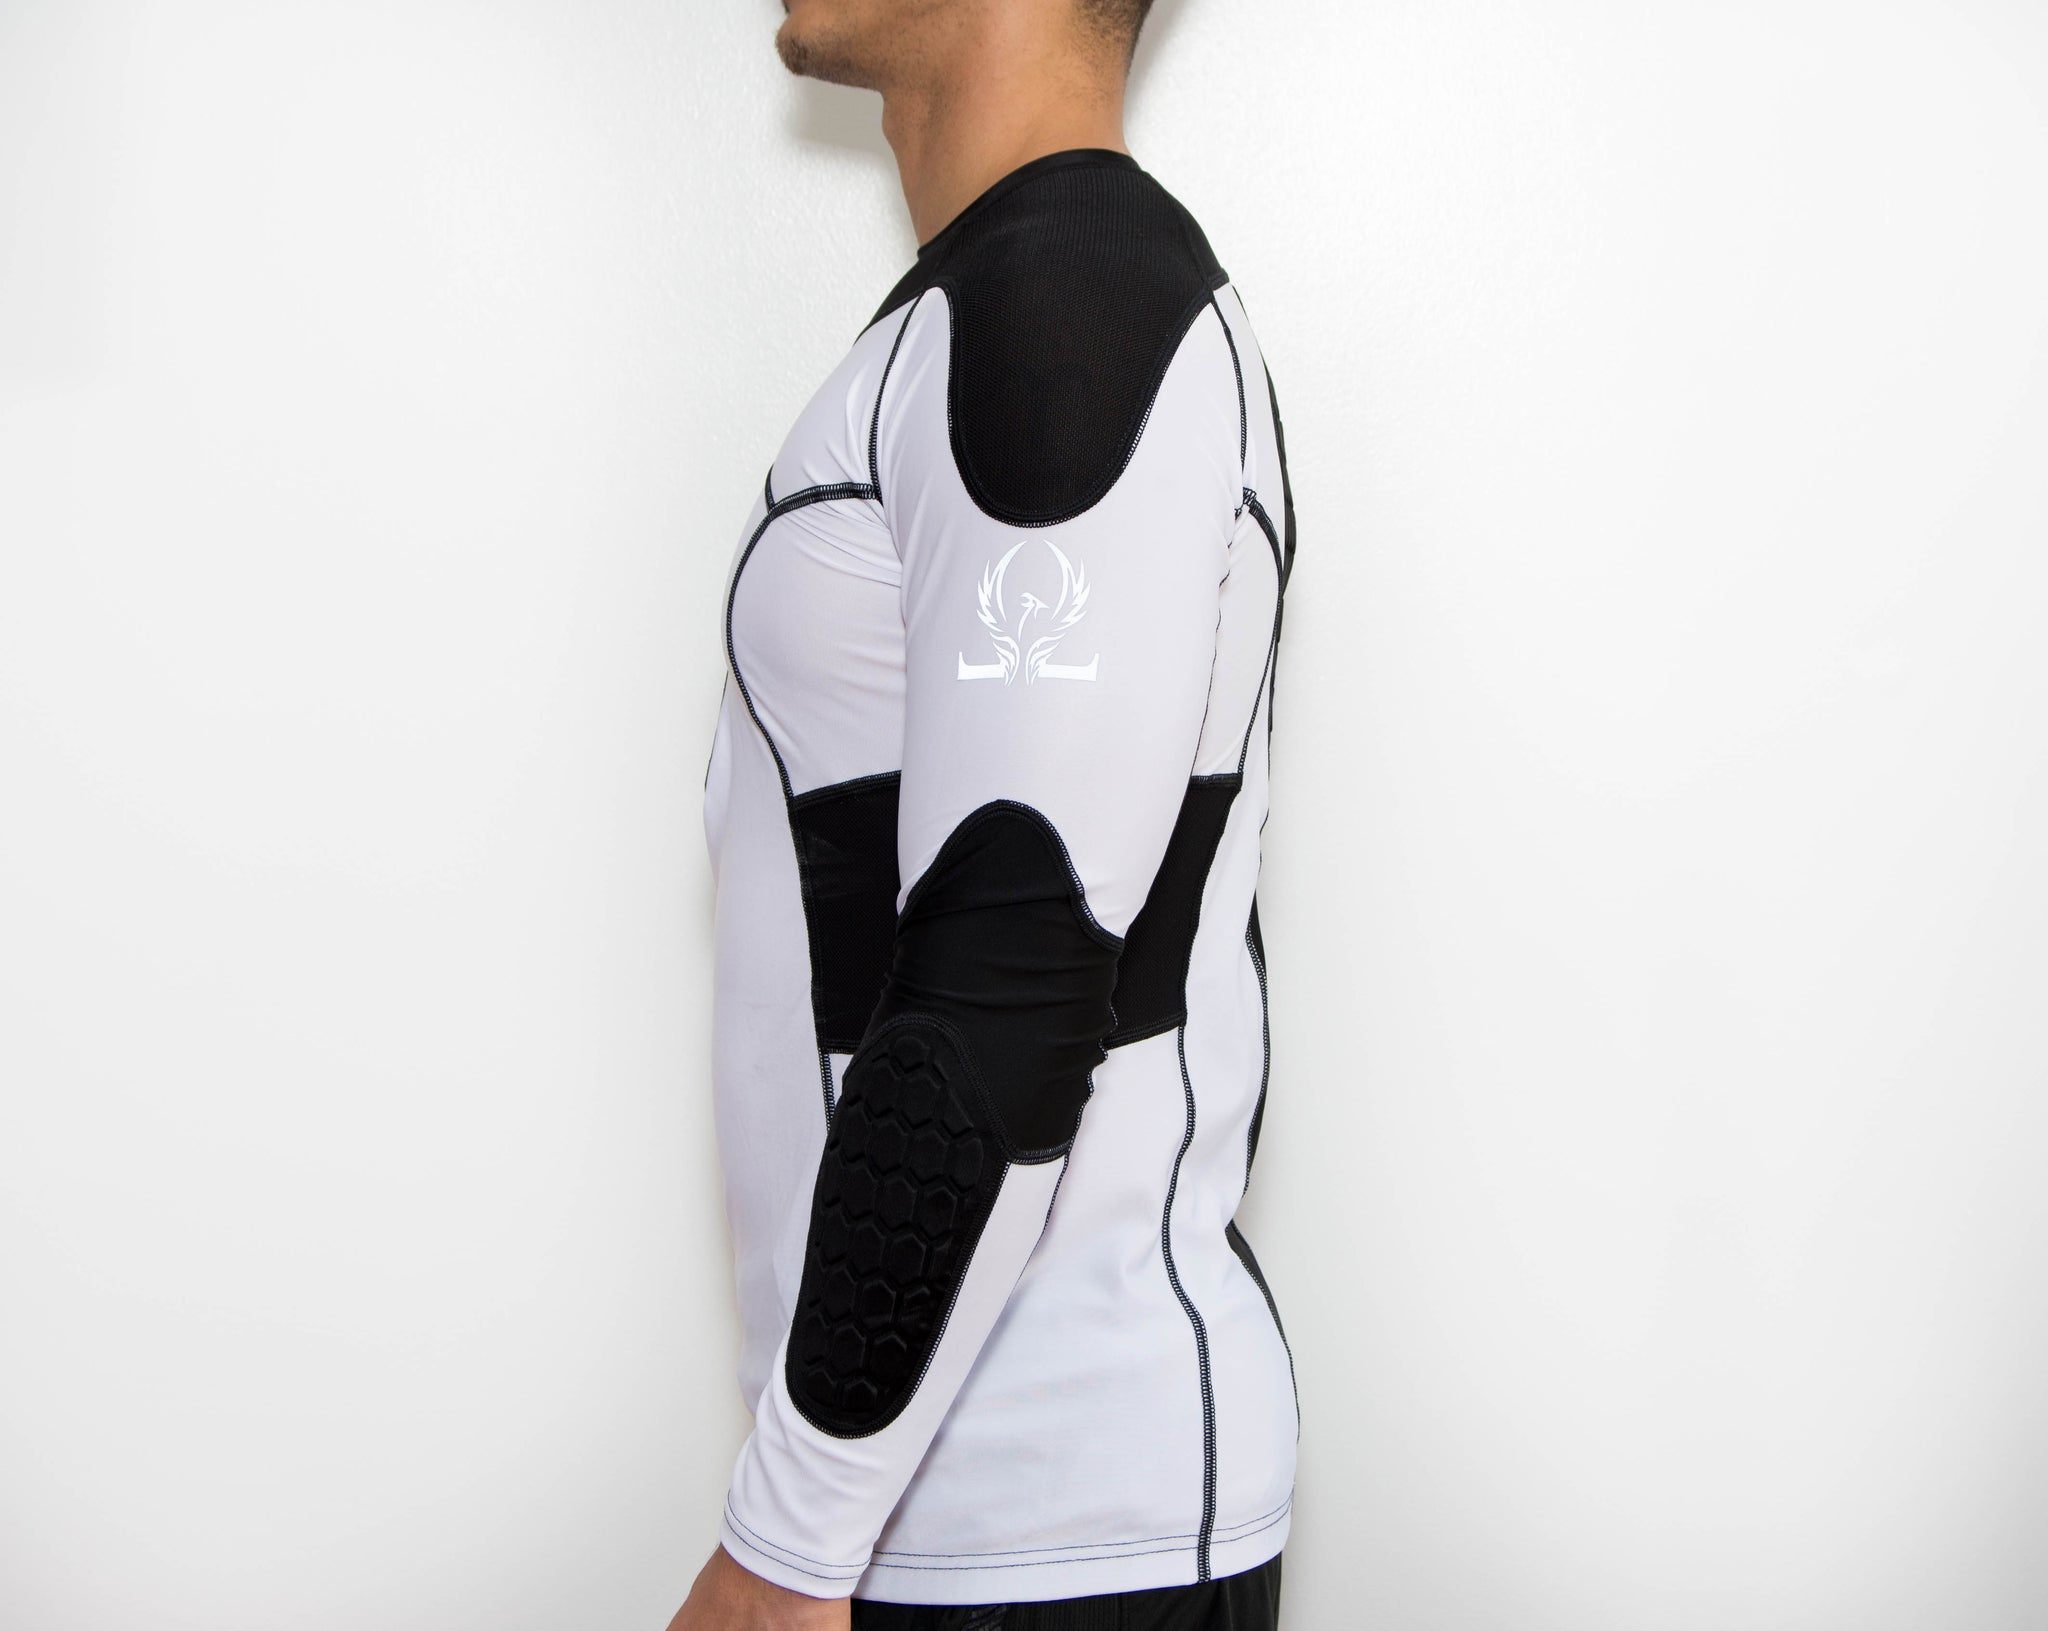 Padded Compression Shirt - Adult - Oronin Wear Martial Arts Athletic Apparel and Supplies